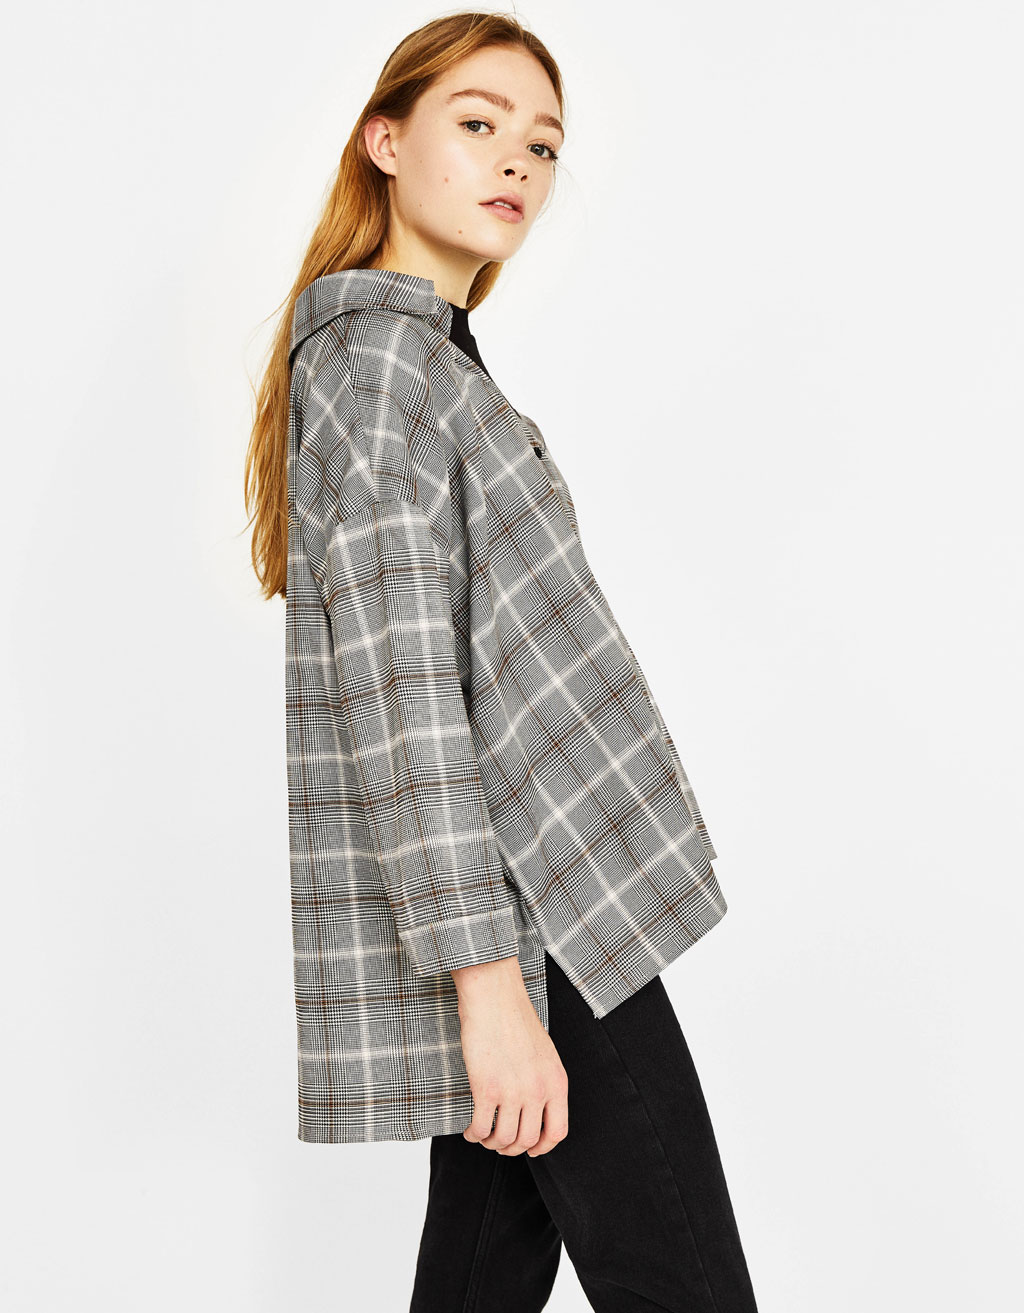 Oversized checked shirt with top